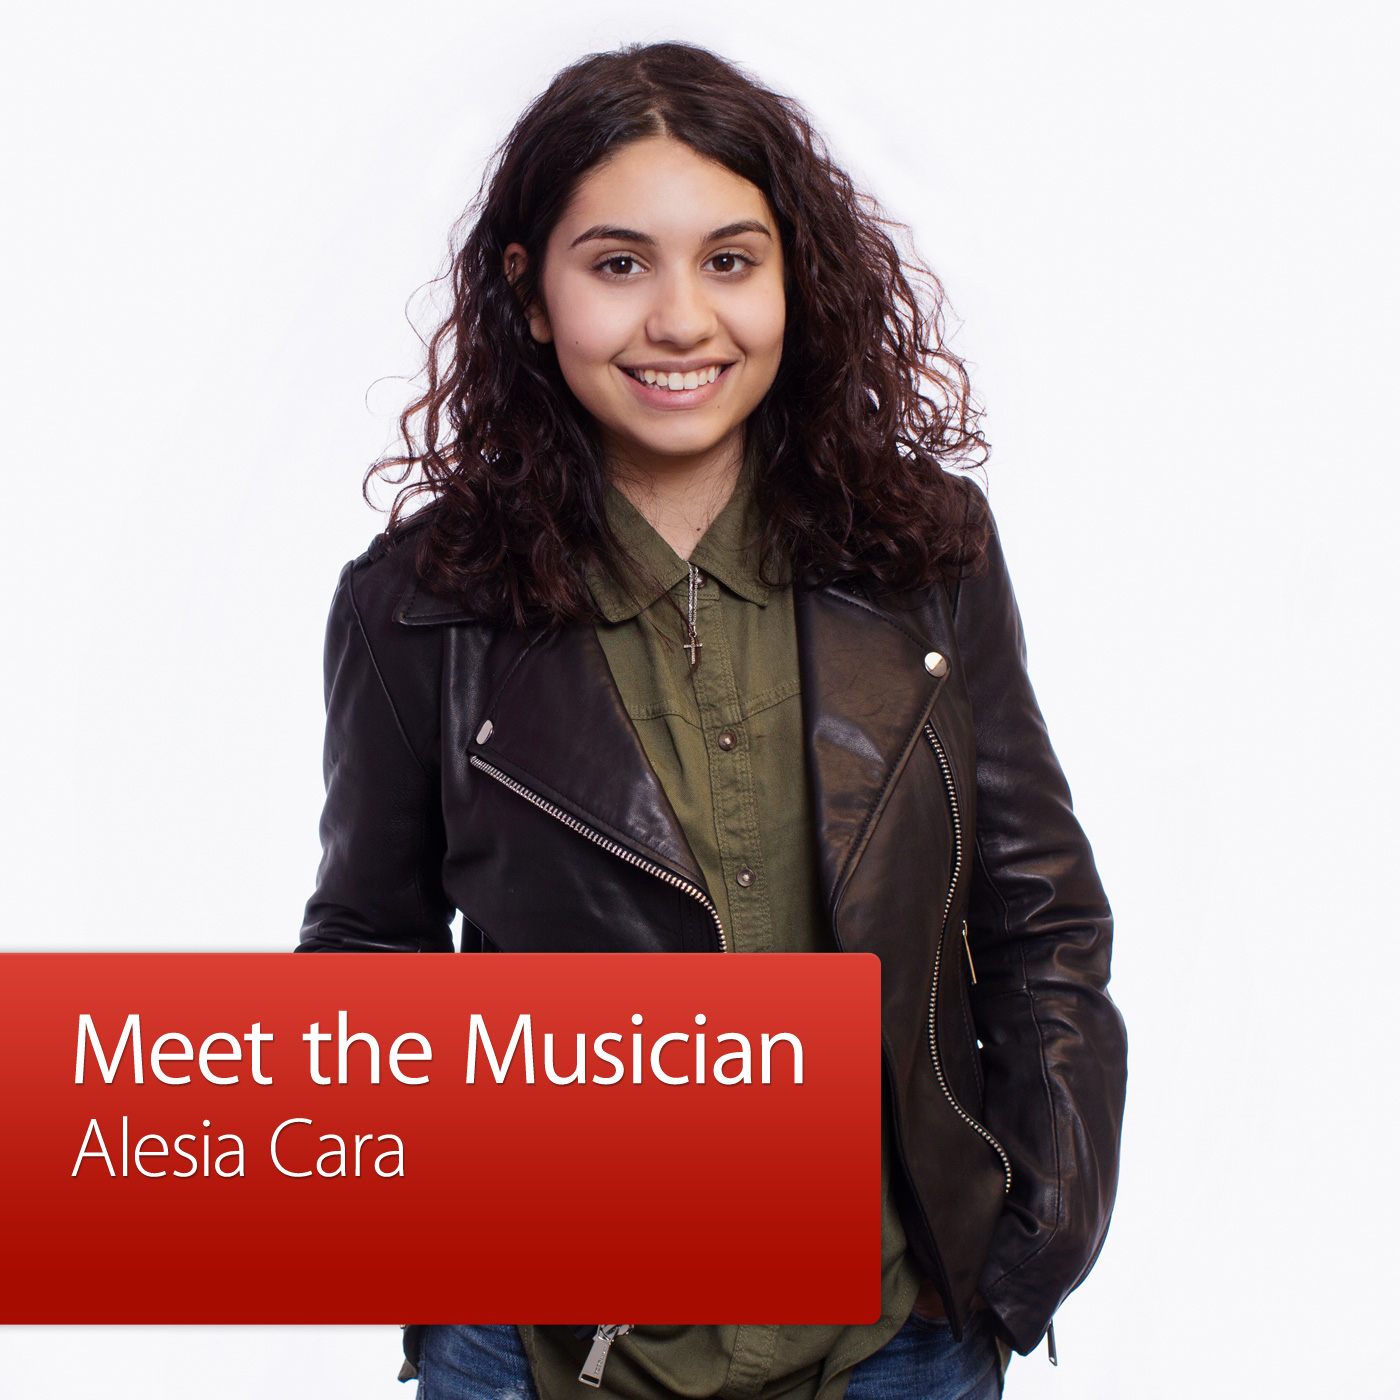 Alessia Cara: Meet the Musician